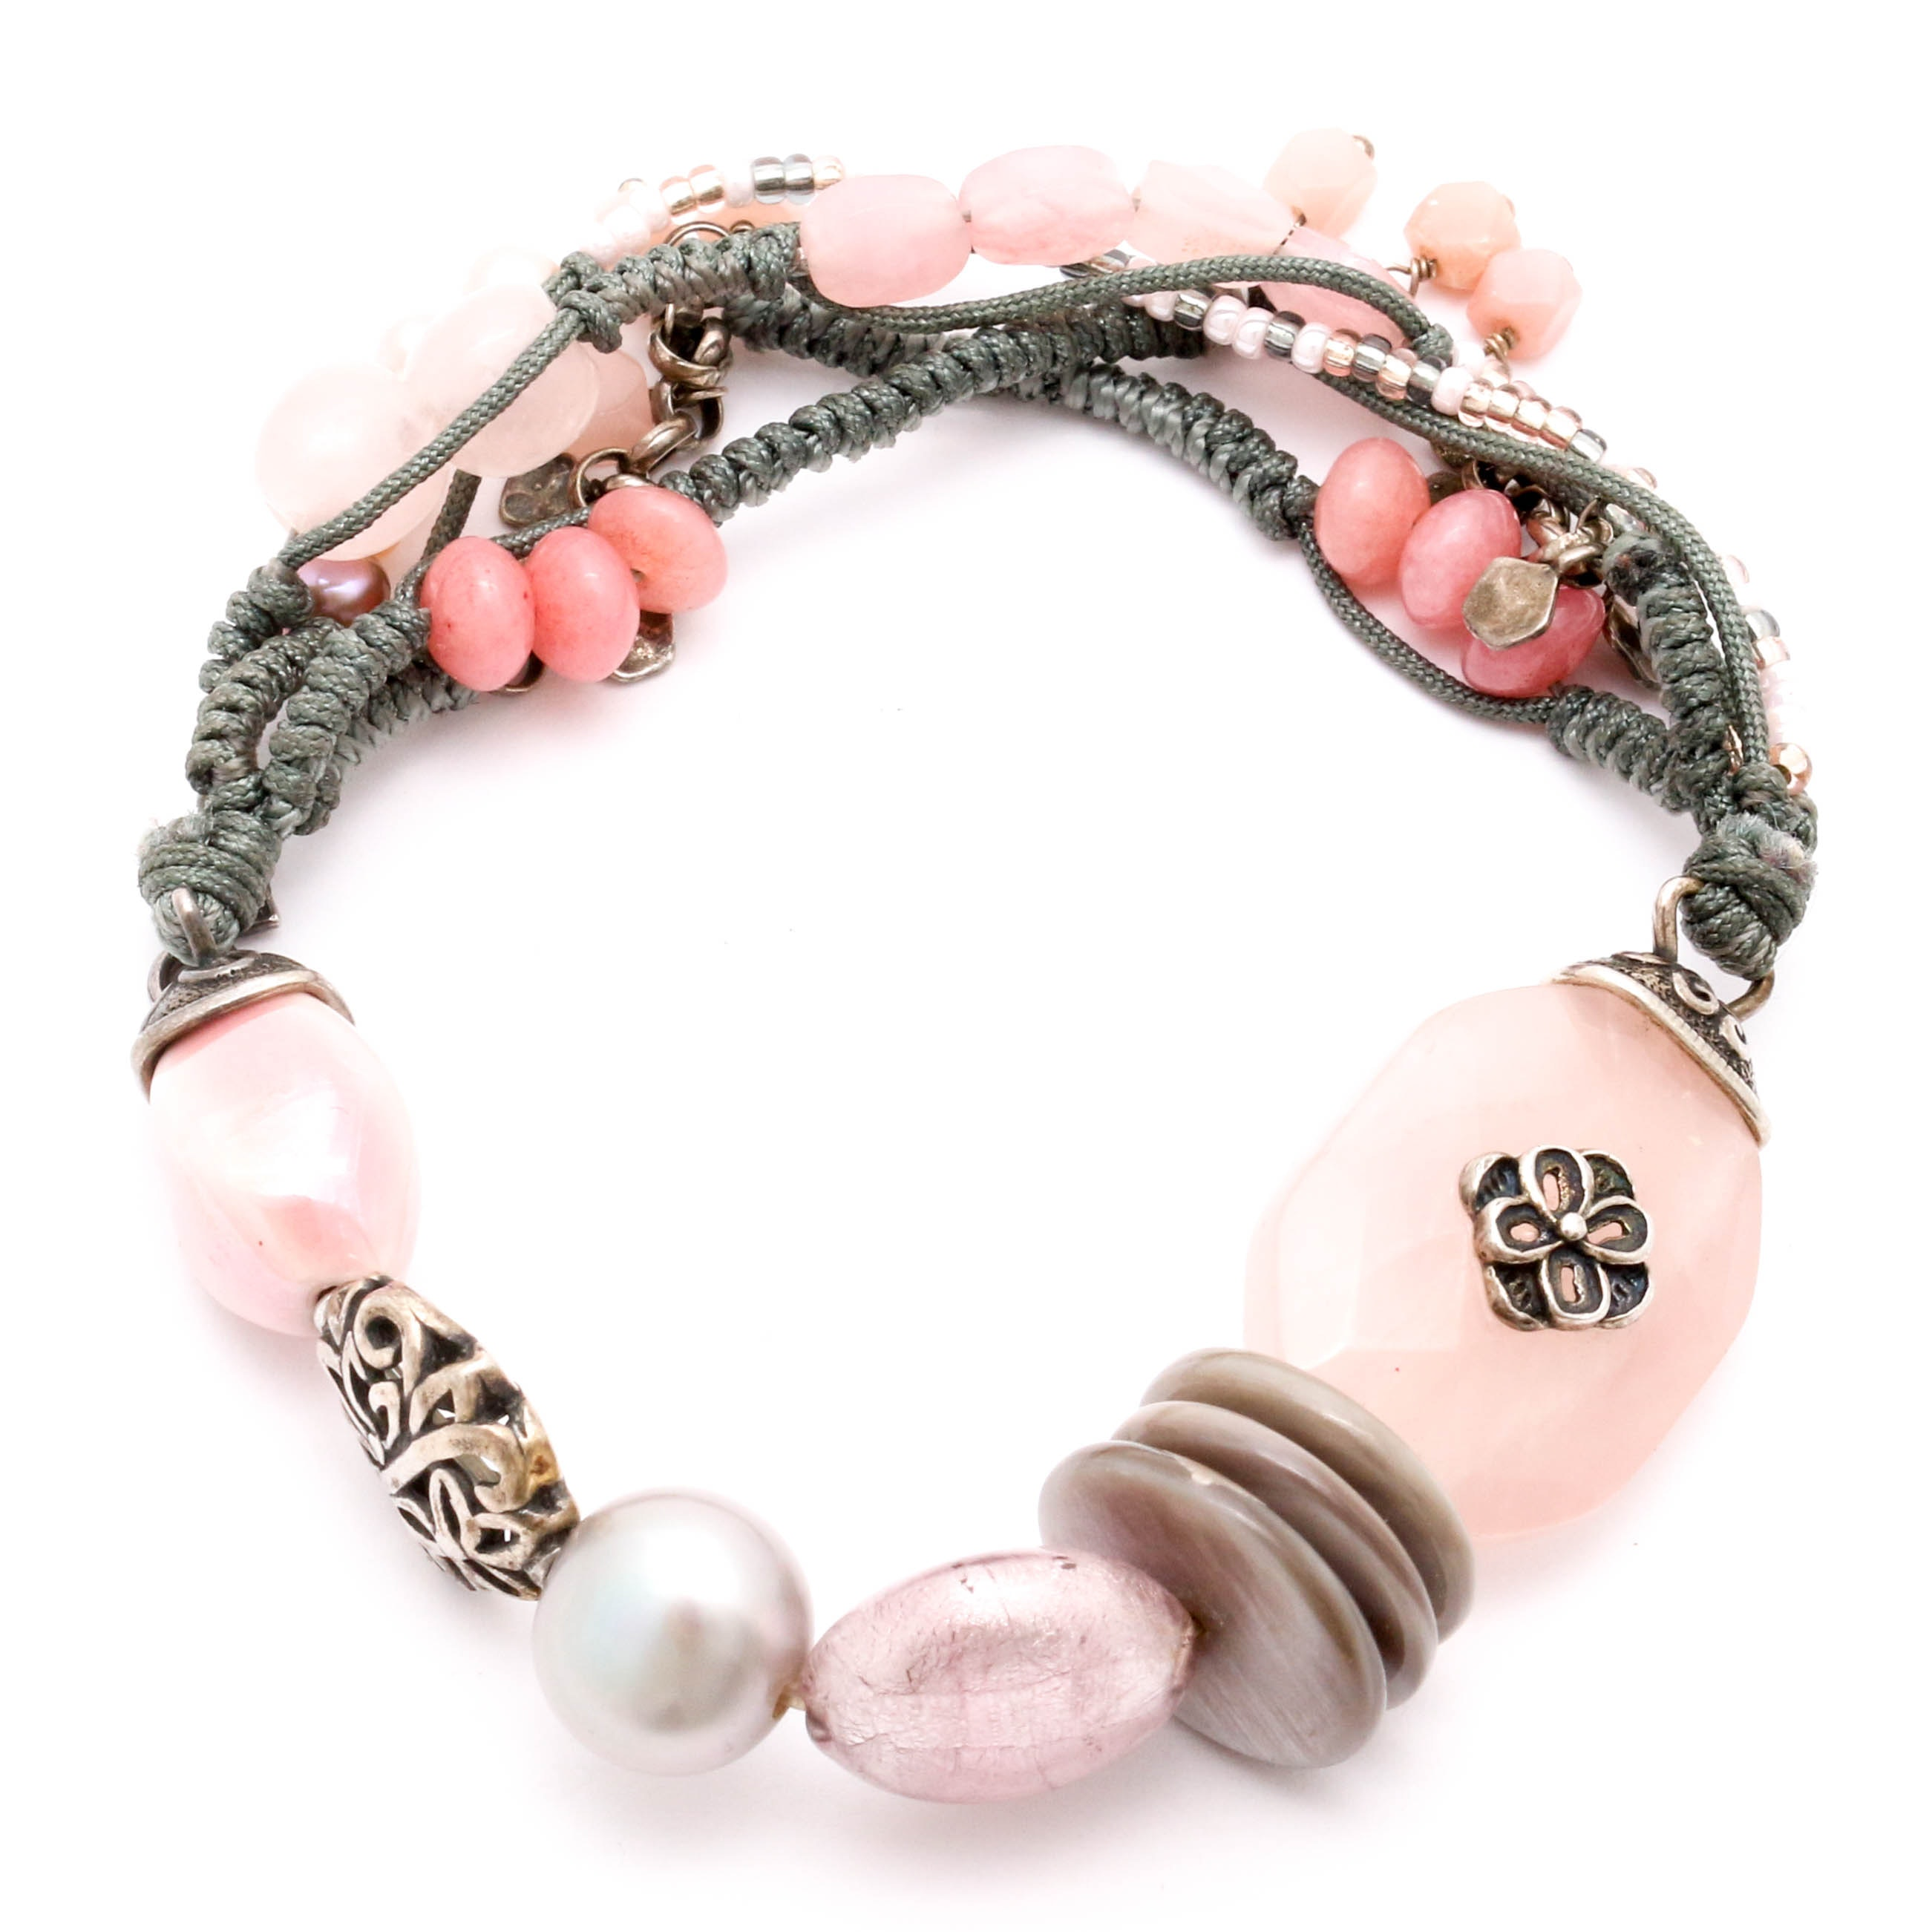 Silpada Sterling Silver Bracelet with Pearl, Rose Quartz, and More